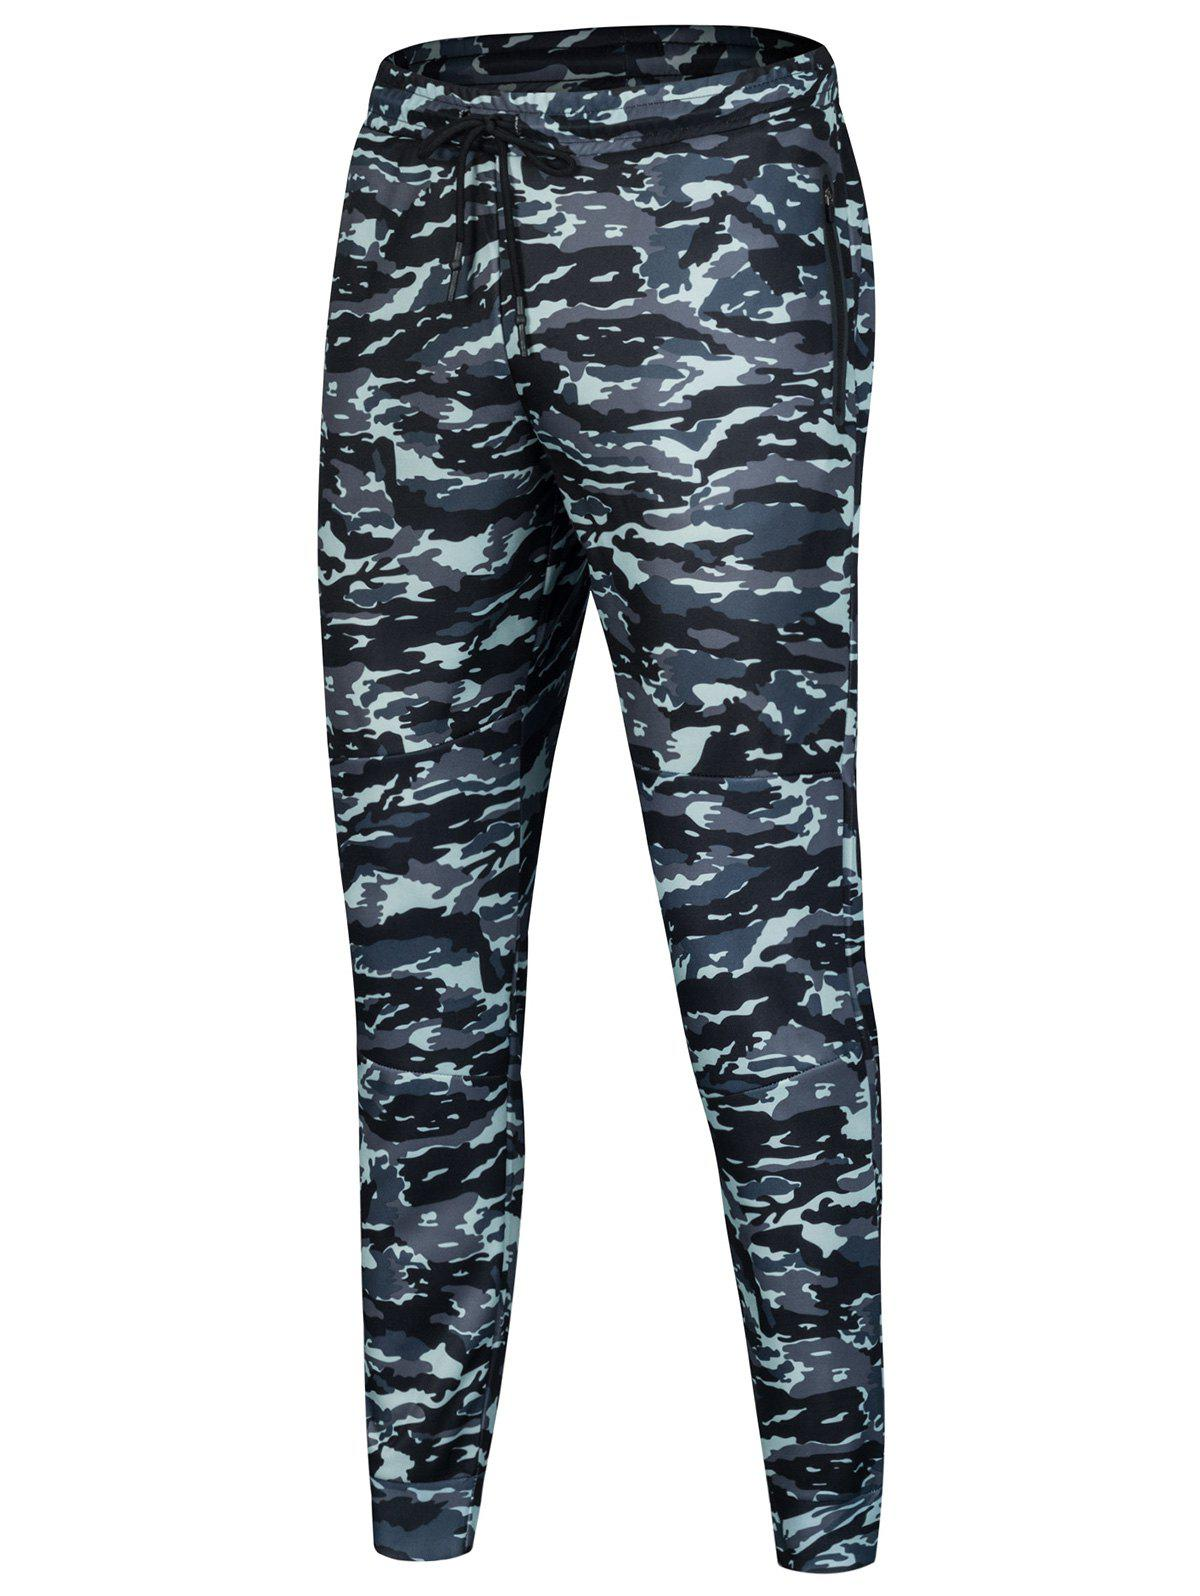 Sports Casual Camouflage Jogger Pants contrast trim jogger casual sports athletic pants